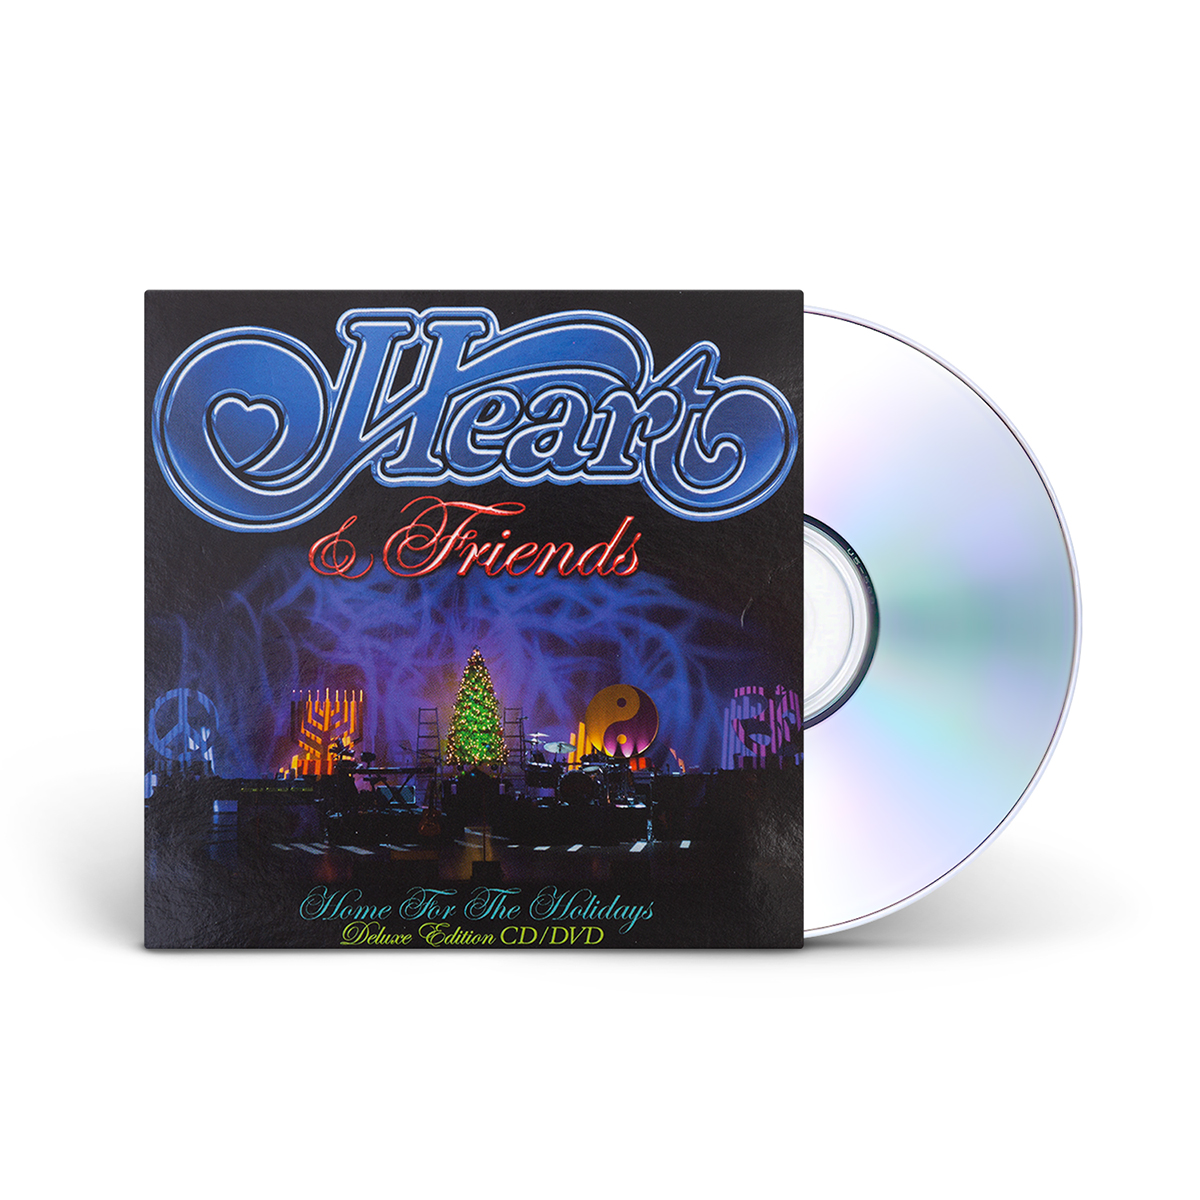 Heart & Friends Home for the Holidays CD